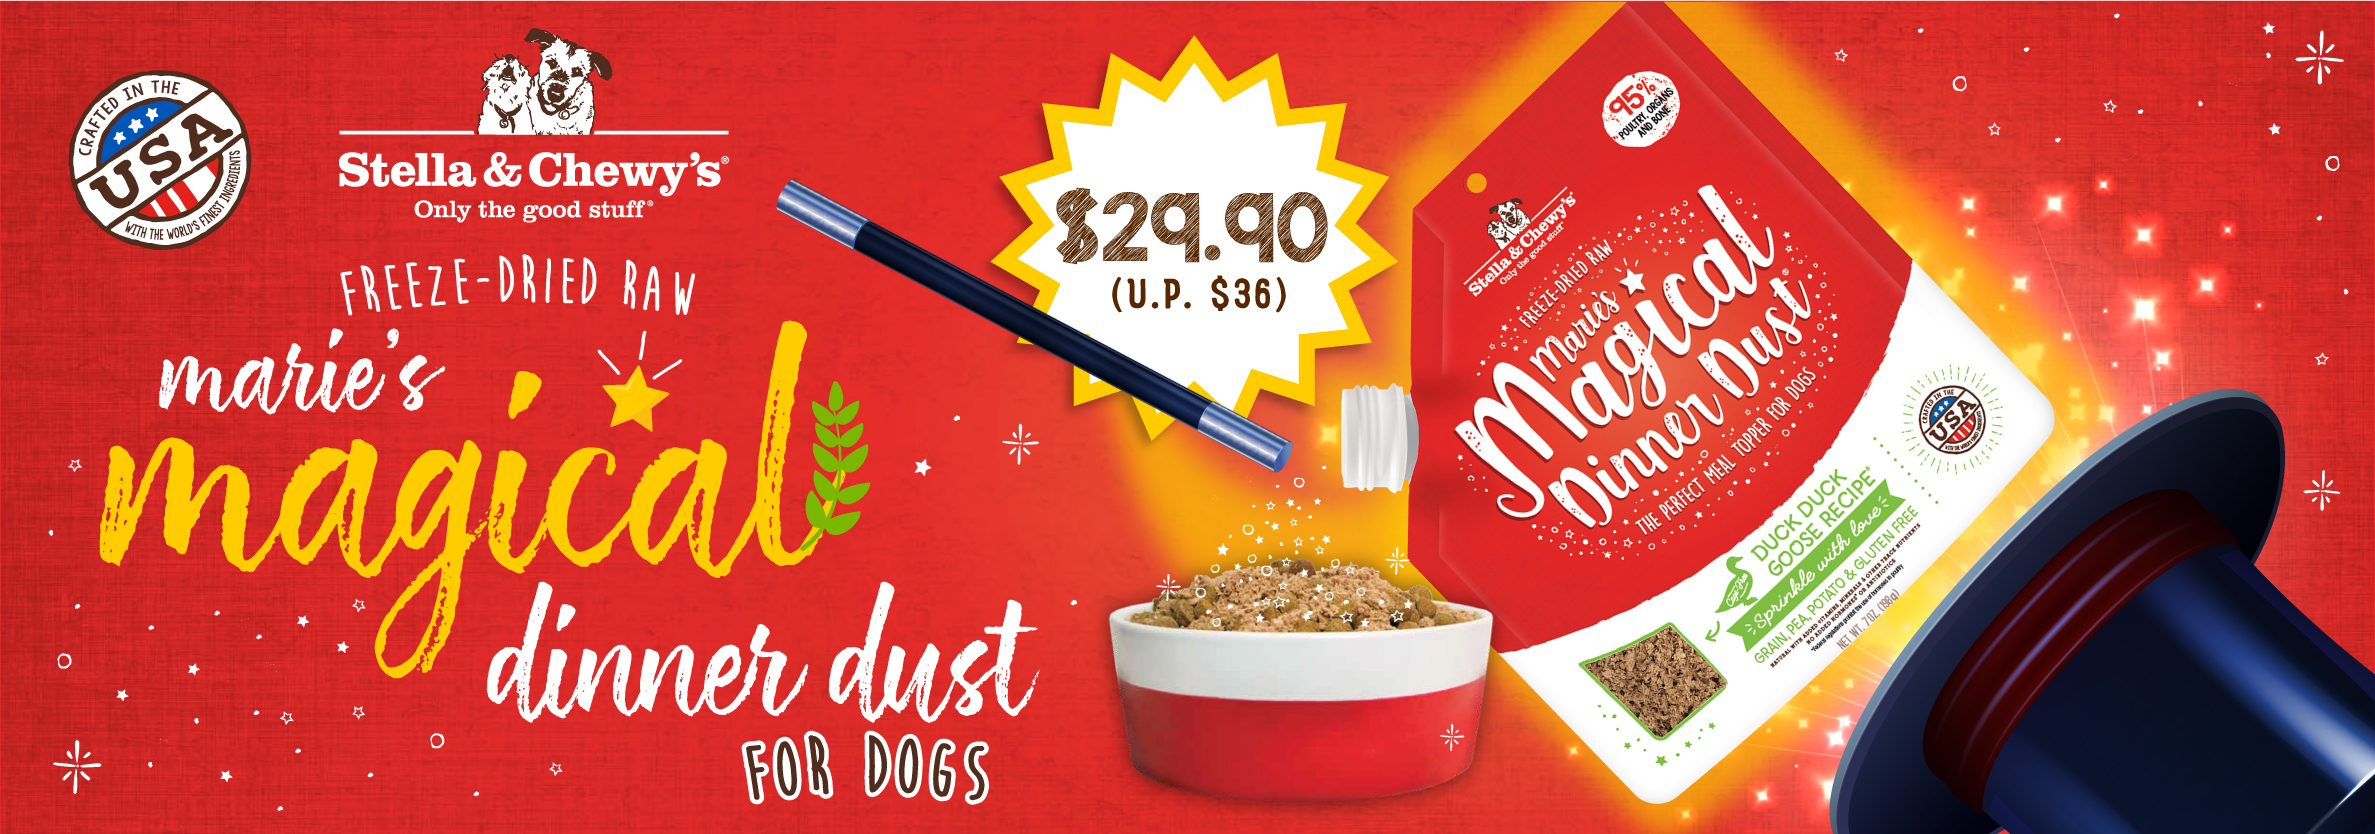 Dog Magical Dinner Dust - Launch Promo B